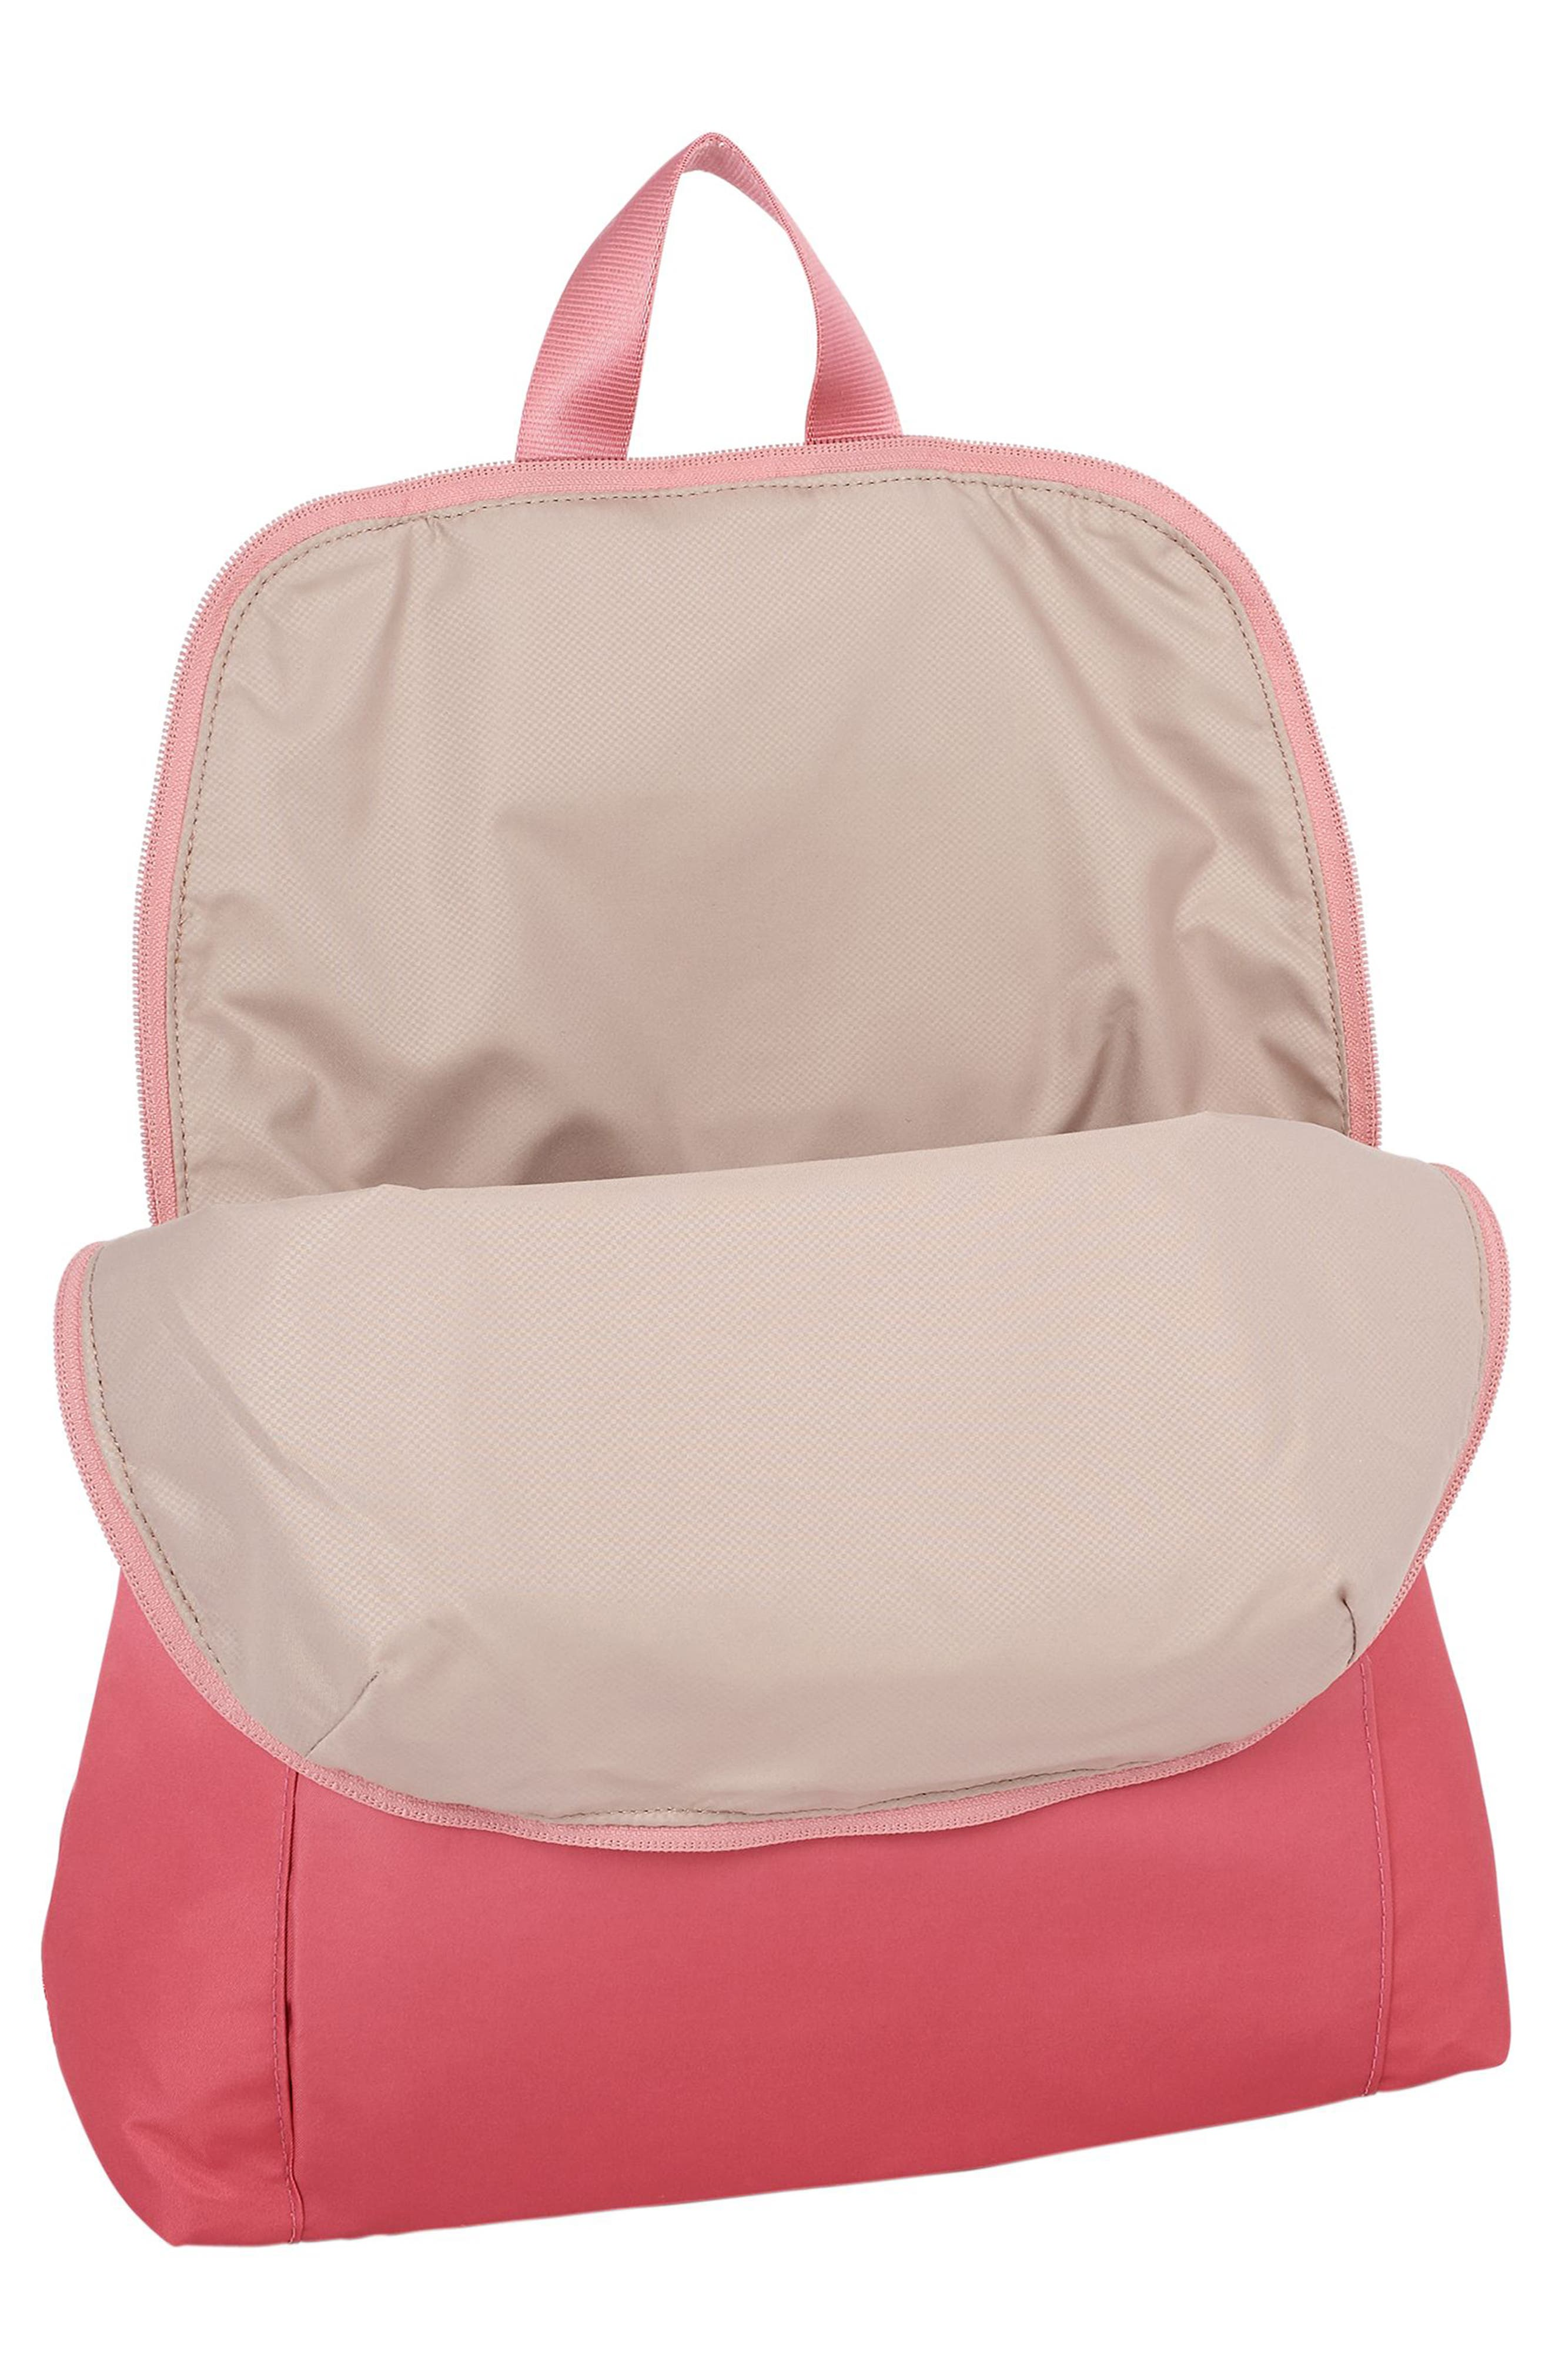 Voyageur - Just in Case Nylon Travel Backpack,                             Alternate thumbnail 3, color,                             PINK OMBRE